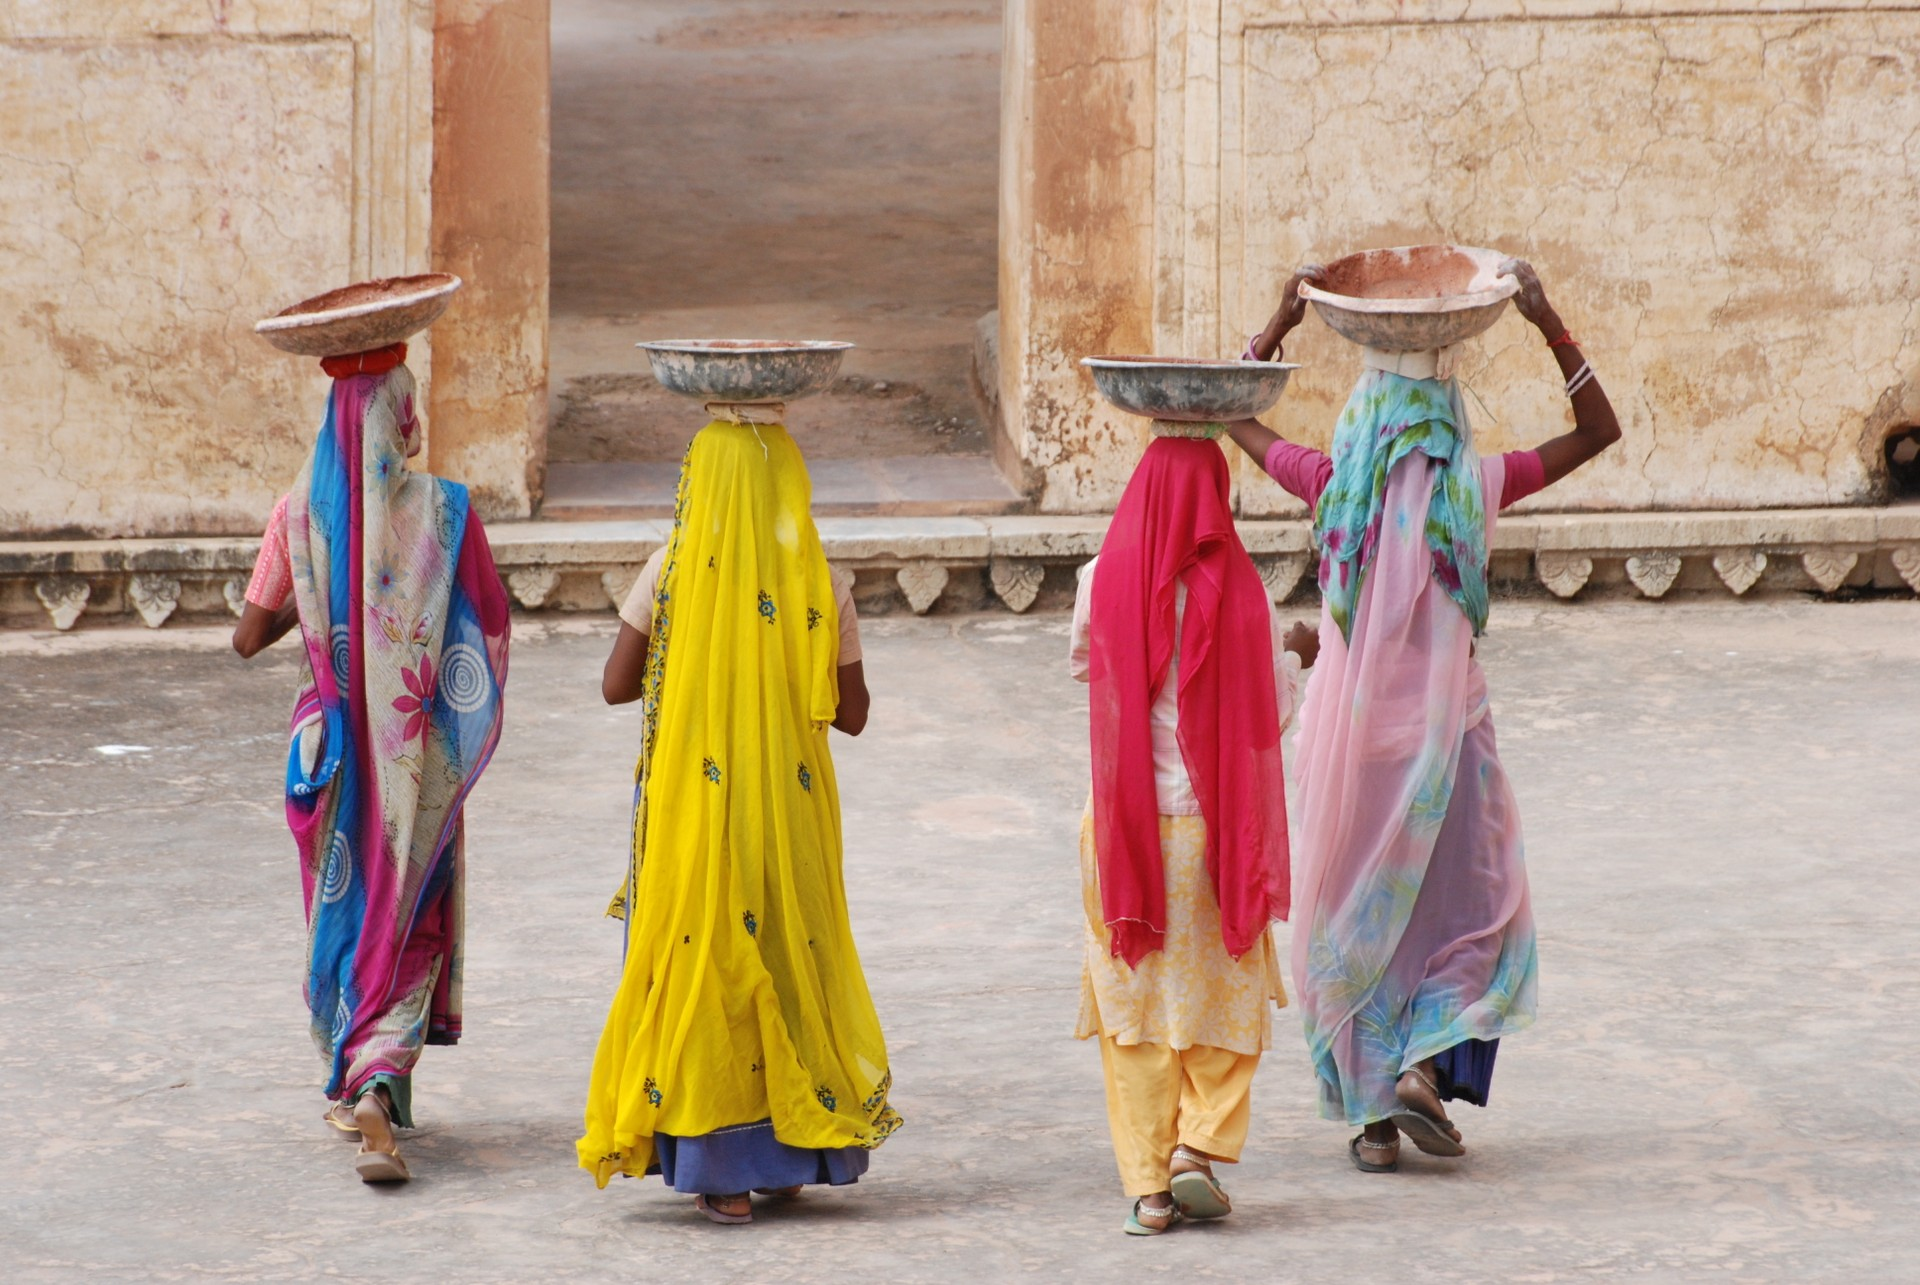 Women carrying baskets in Rajasthan, India